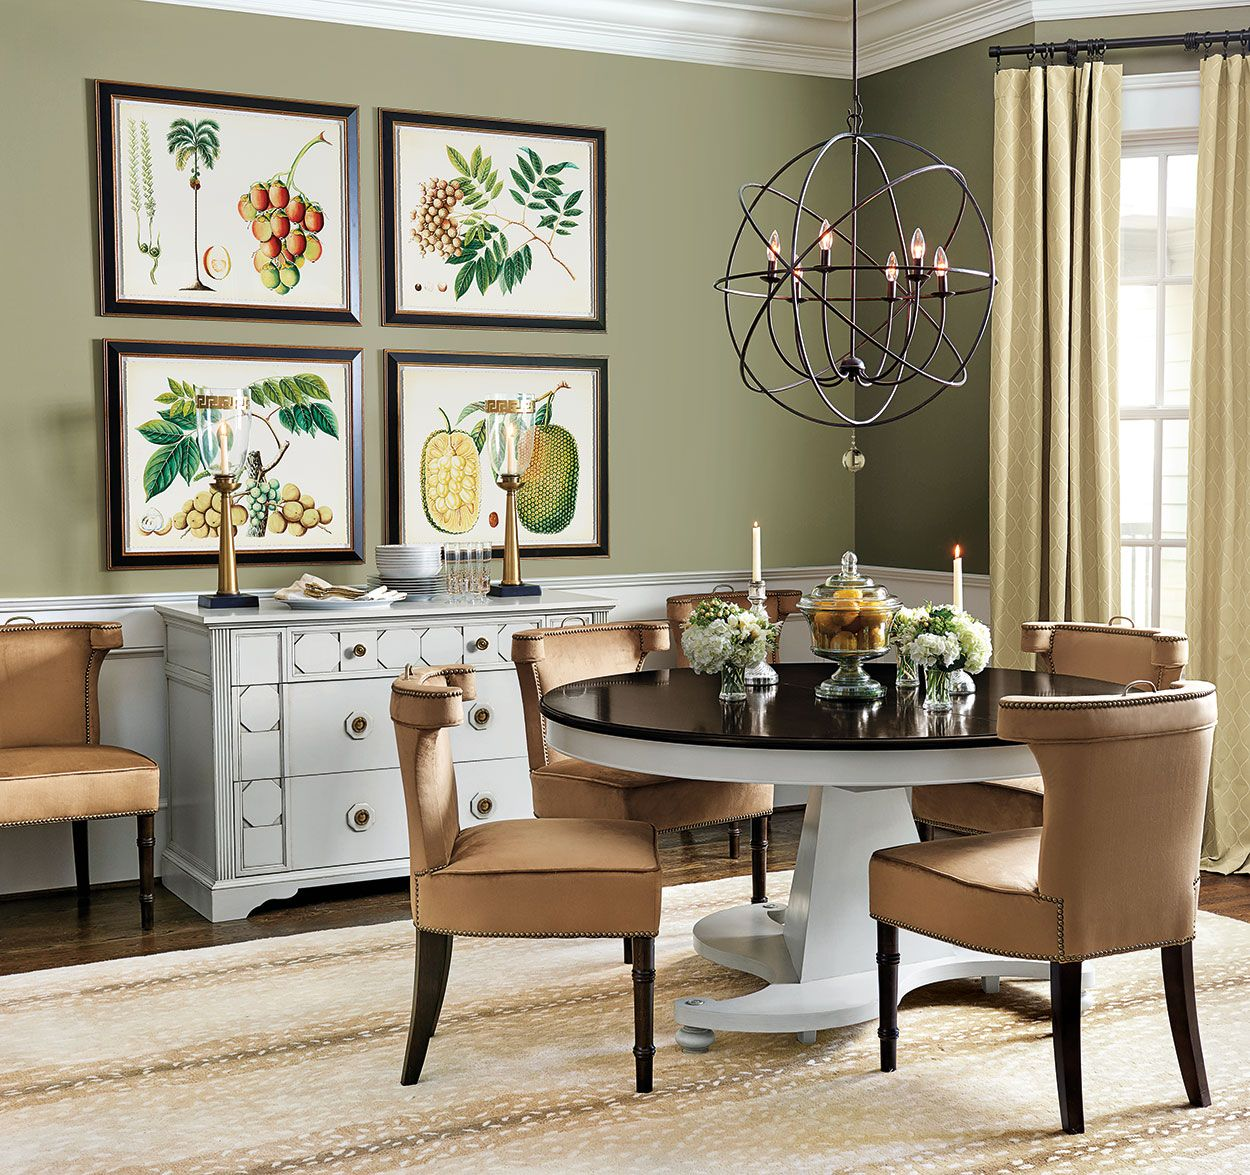 Olive And Blue Kitchen: Dining Room Decorating Ideas